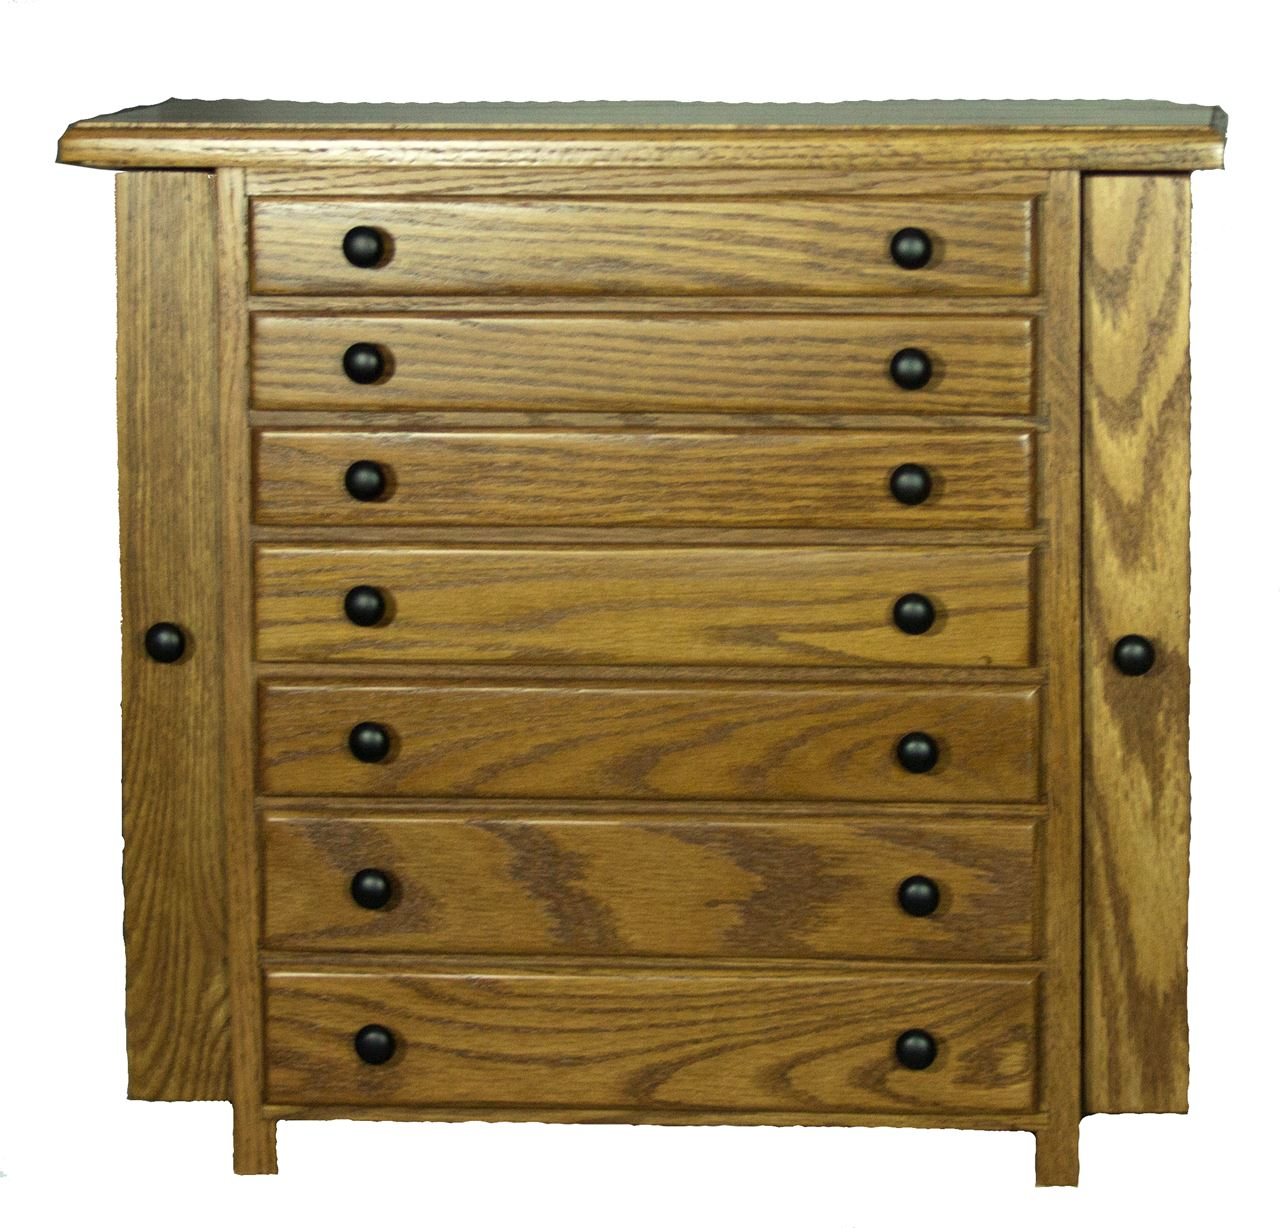 Picture of Amish made Jewelry Armoire - 7 drawer - 2 door ...